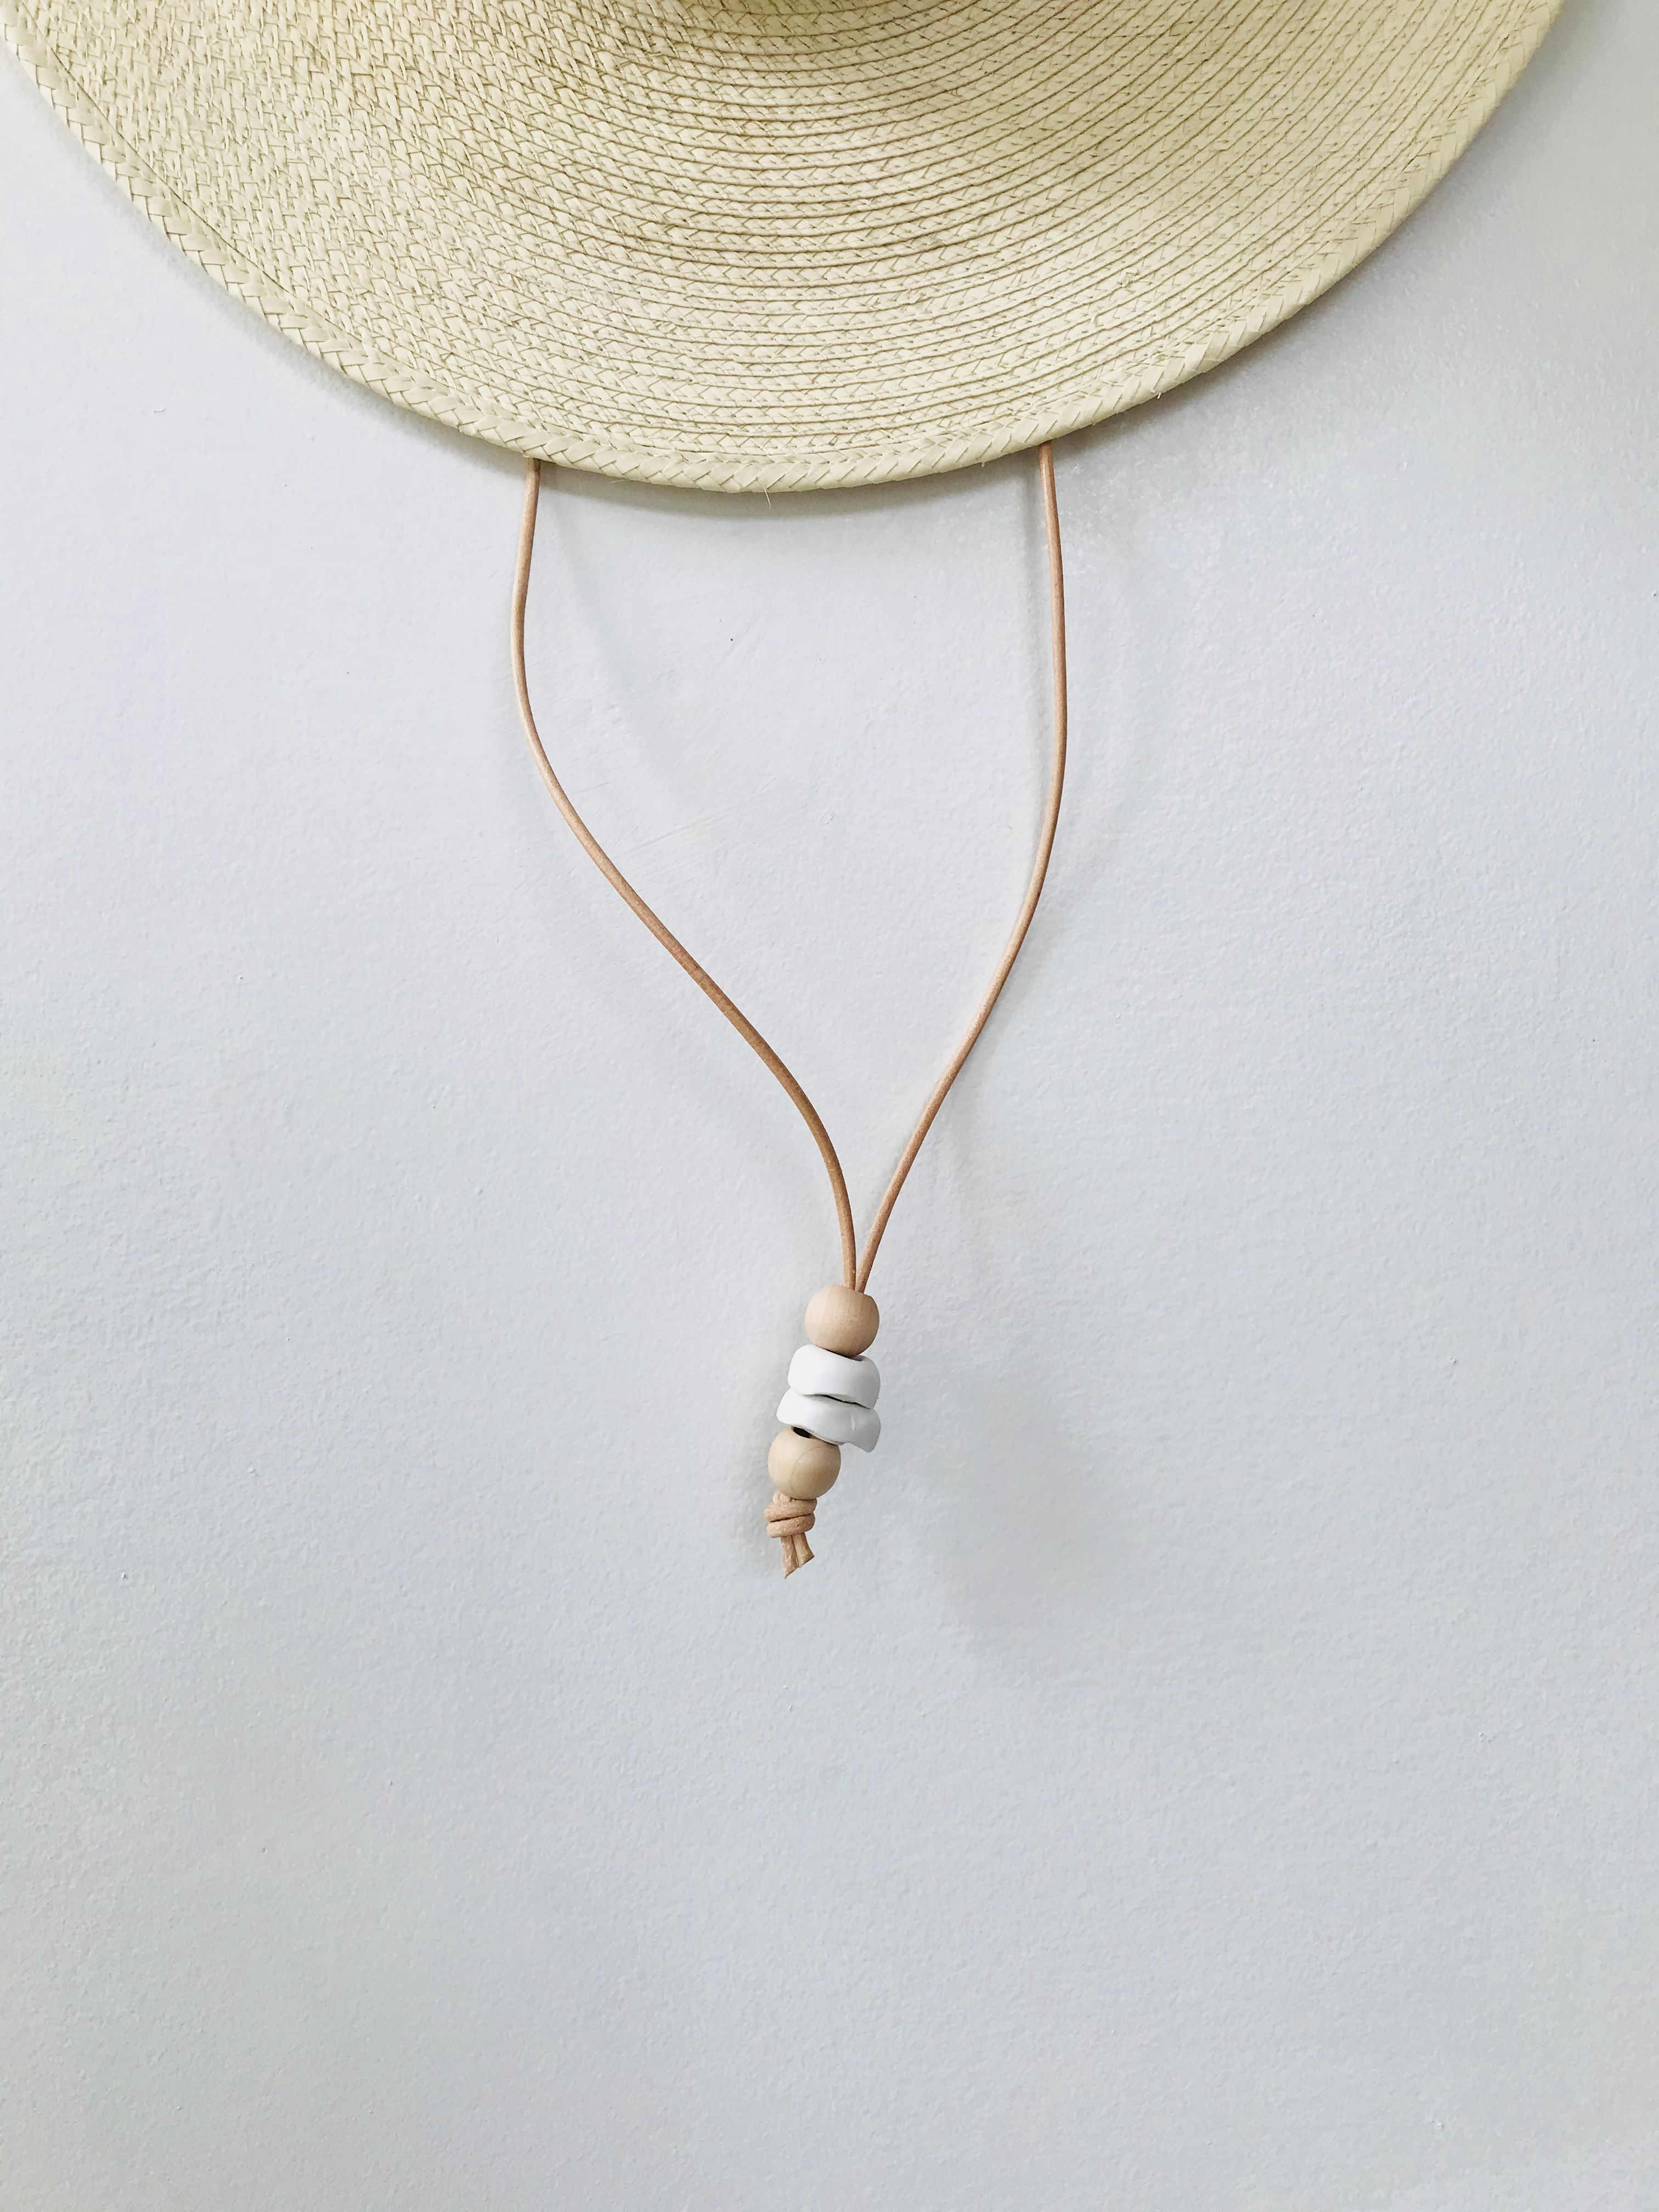 417c4f8c Custom stampede cord with hand-made clay + hand-churned birch wood beads.  Find this Pin and more on Desert Sun Hat Collection by west perro.